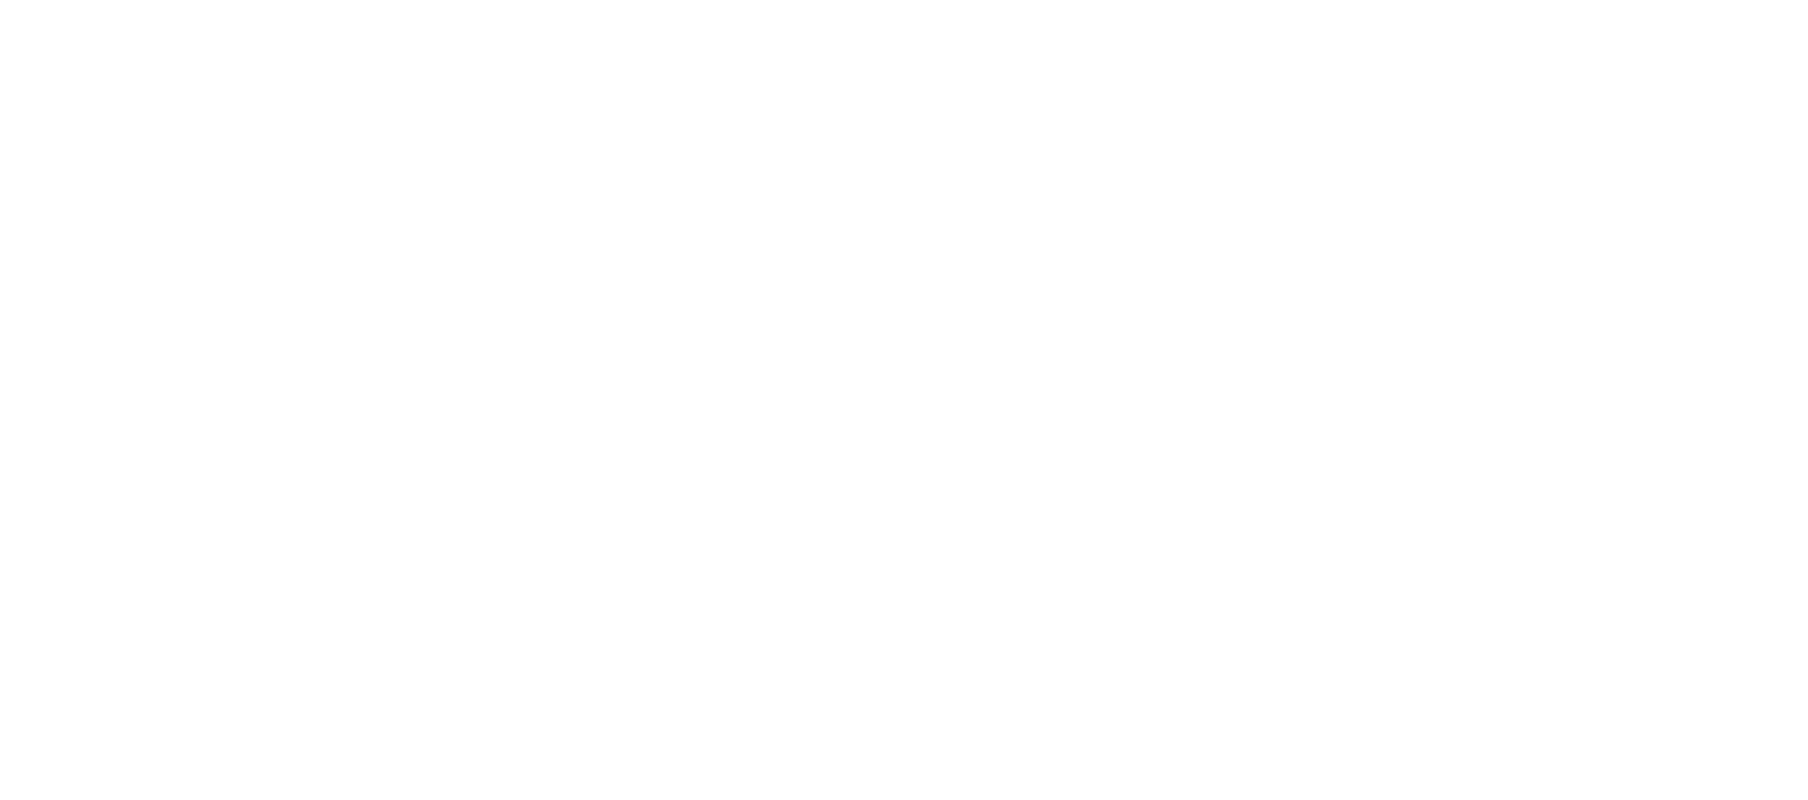 Master Builders Gold Coast 2016 Finalist